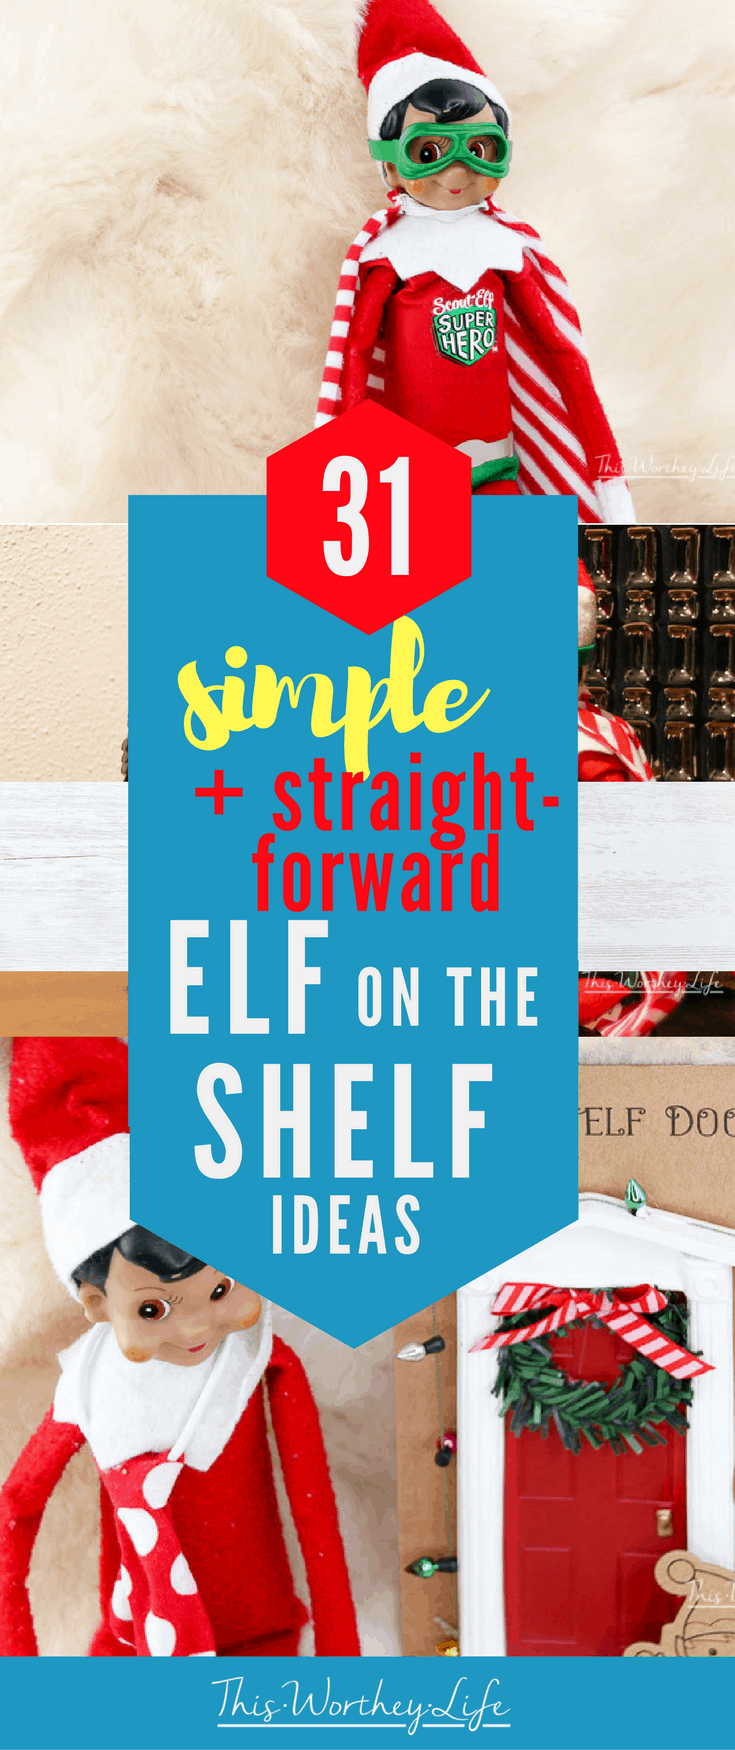 Don't let the stress of having an Elf on the Shelf get to you. I have 31 Simple Elf on the Shelf ideas that are straight to the point! Head to the blog to get our Easy and Simple Elf on the Shelf ideas to use this holiday season!